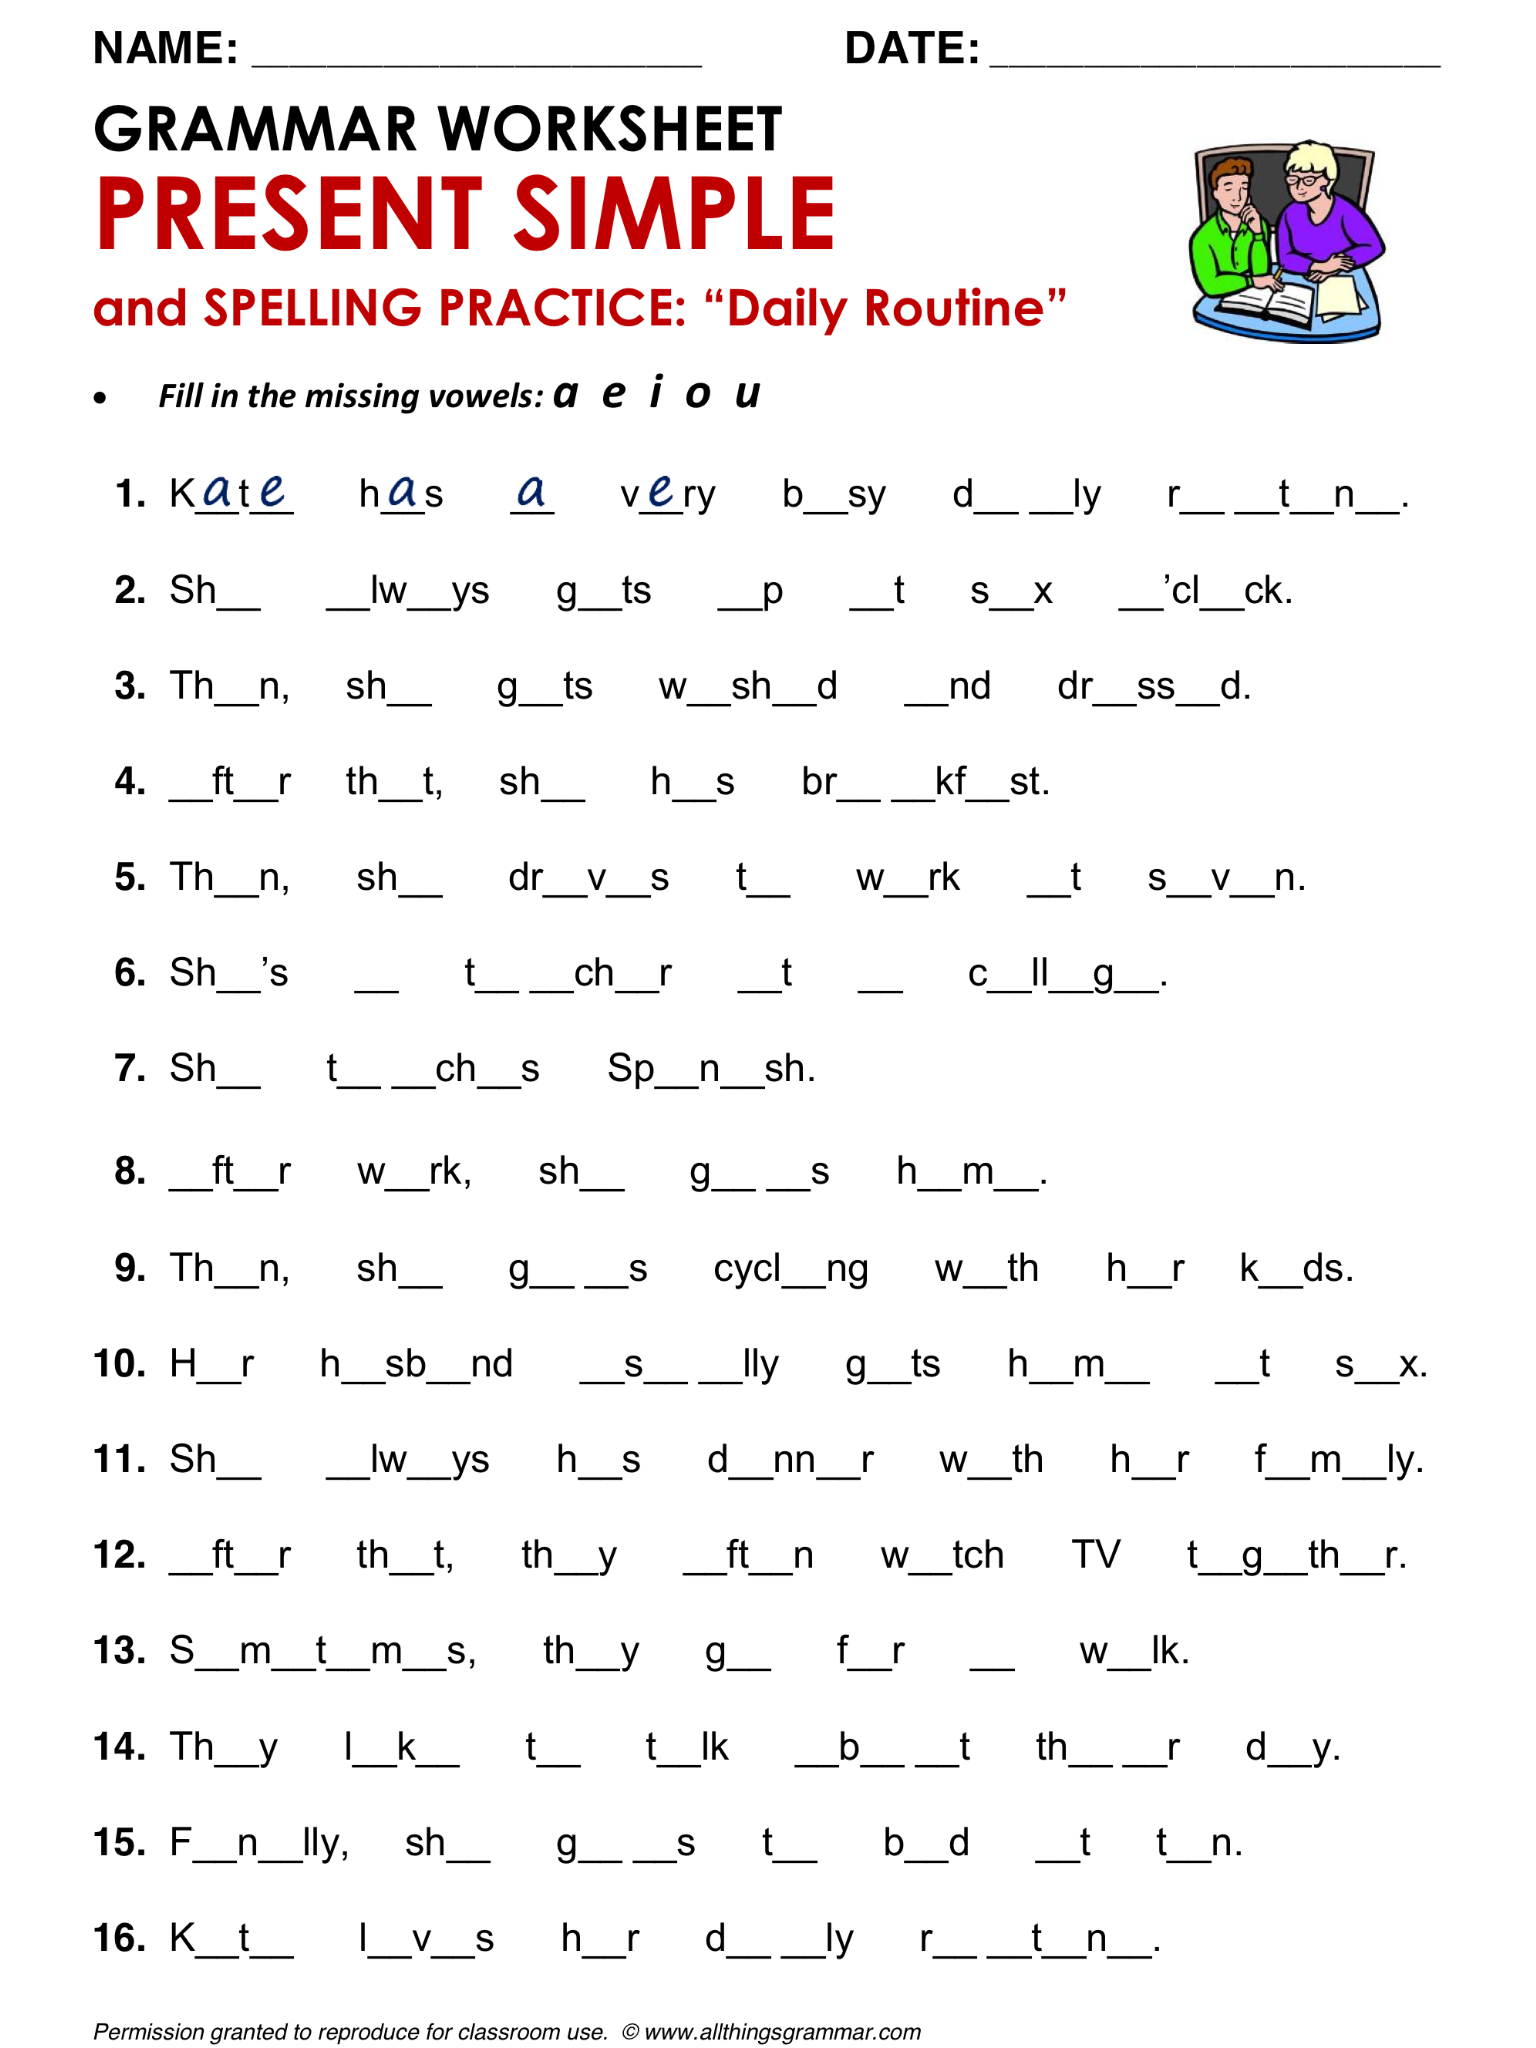 Worksheets Daily Grammar Practice Worksheets english grammar present simple and spelling practice daily routine http